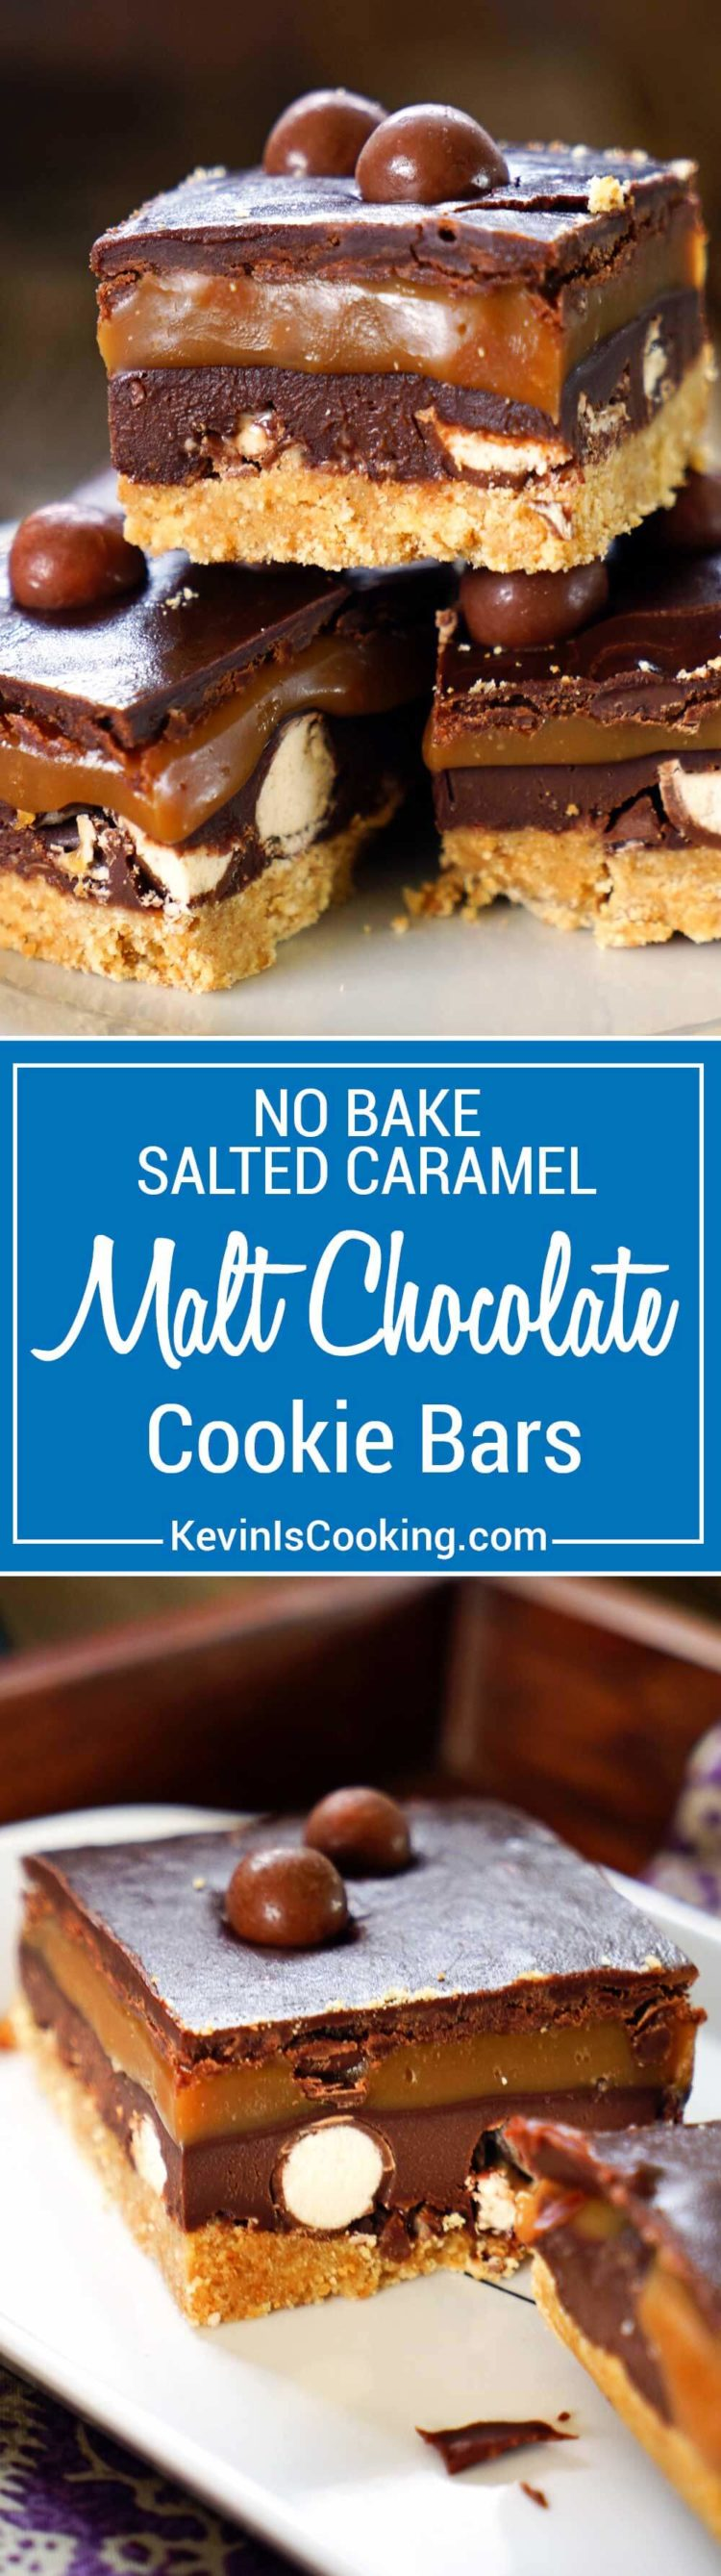 Be prepared for an over-the-top, wow-the-crowd, flavor, texture, nirvana sensation! With a cookie base, malt balls, chocolate truffle and caramel filling, THIS is no-bake Holiday goodness!